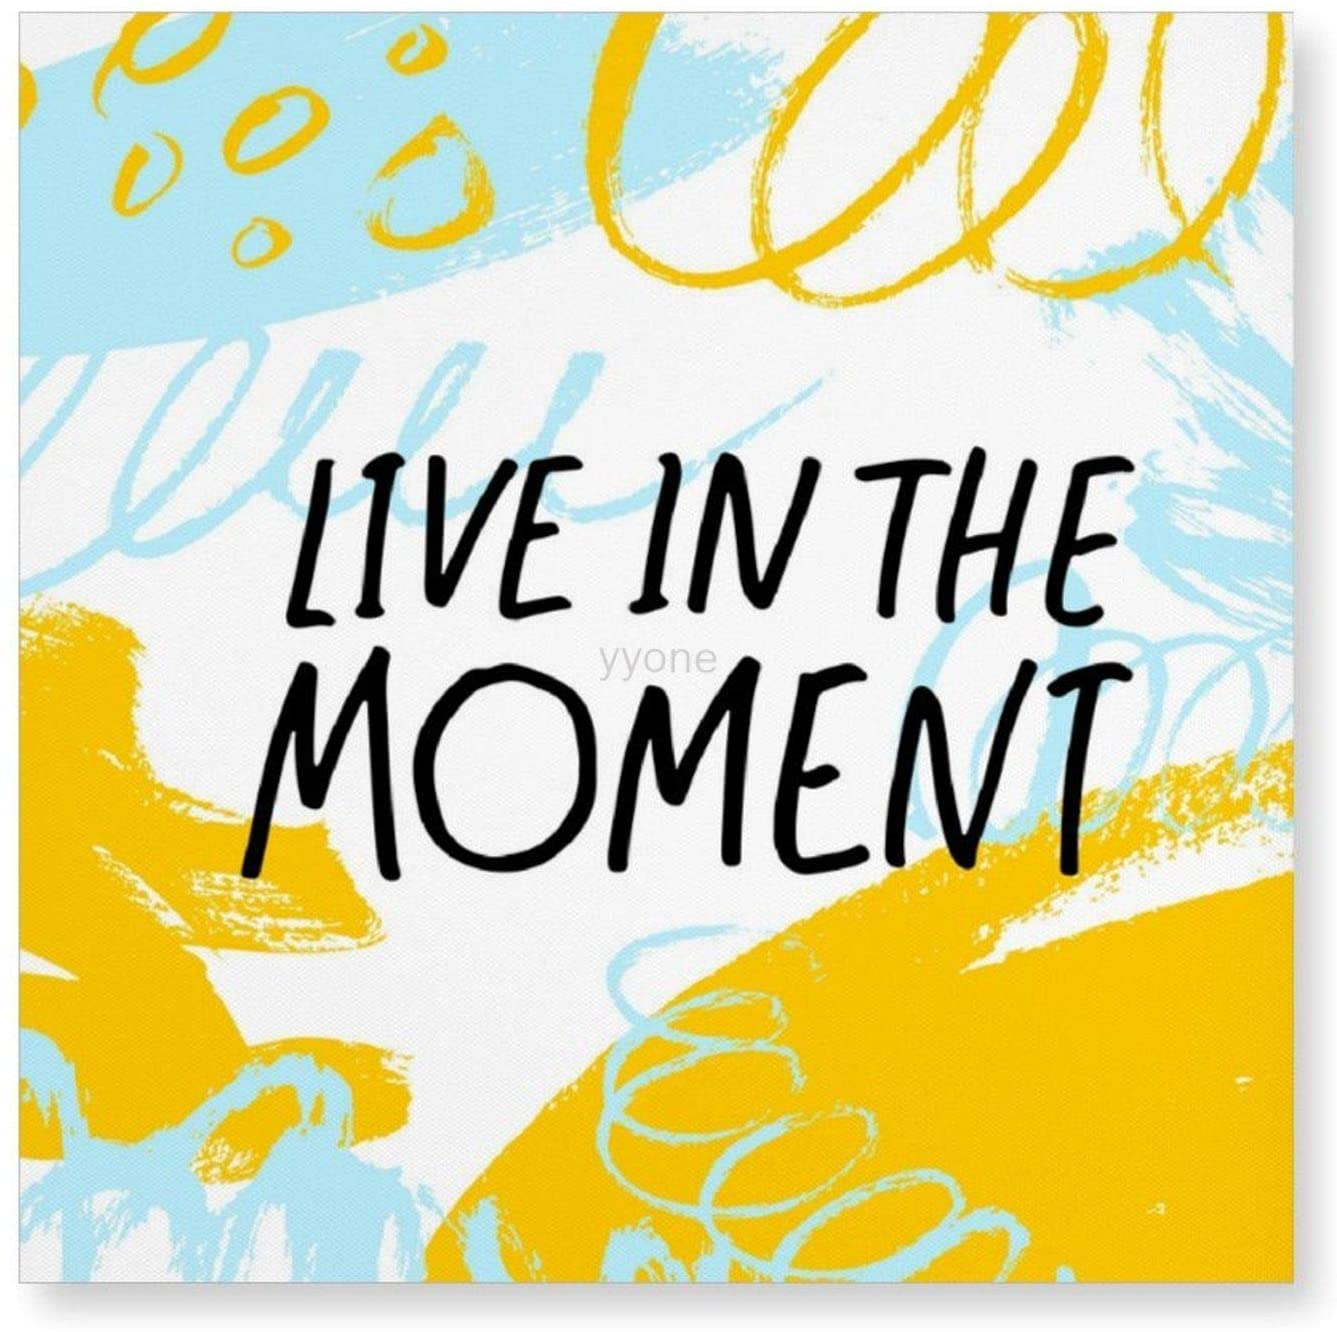 yyone Framed Canvas Printing Wall Décor Live in The Moment, Hanging Canvas Art Print Home Decor for Living Room/Bed Room 8